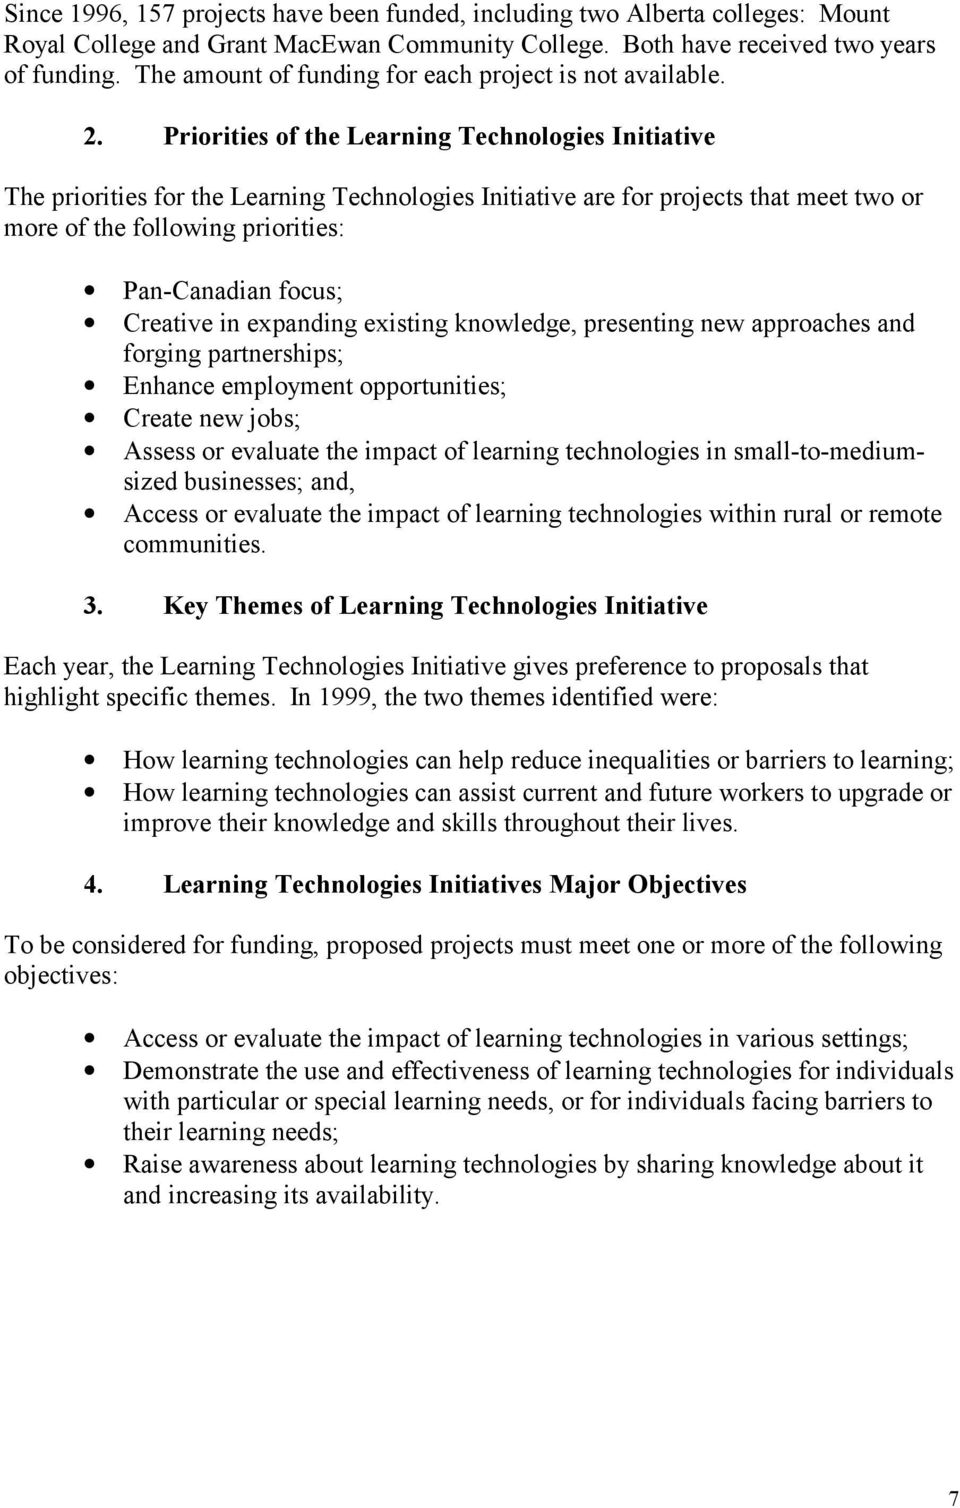 Priorities of the Learning Technologies Initiative The priorities for the Learning Technologies Initiative are for projects that meet two or more of the following priorities: Pan-Canadian focus;